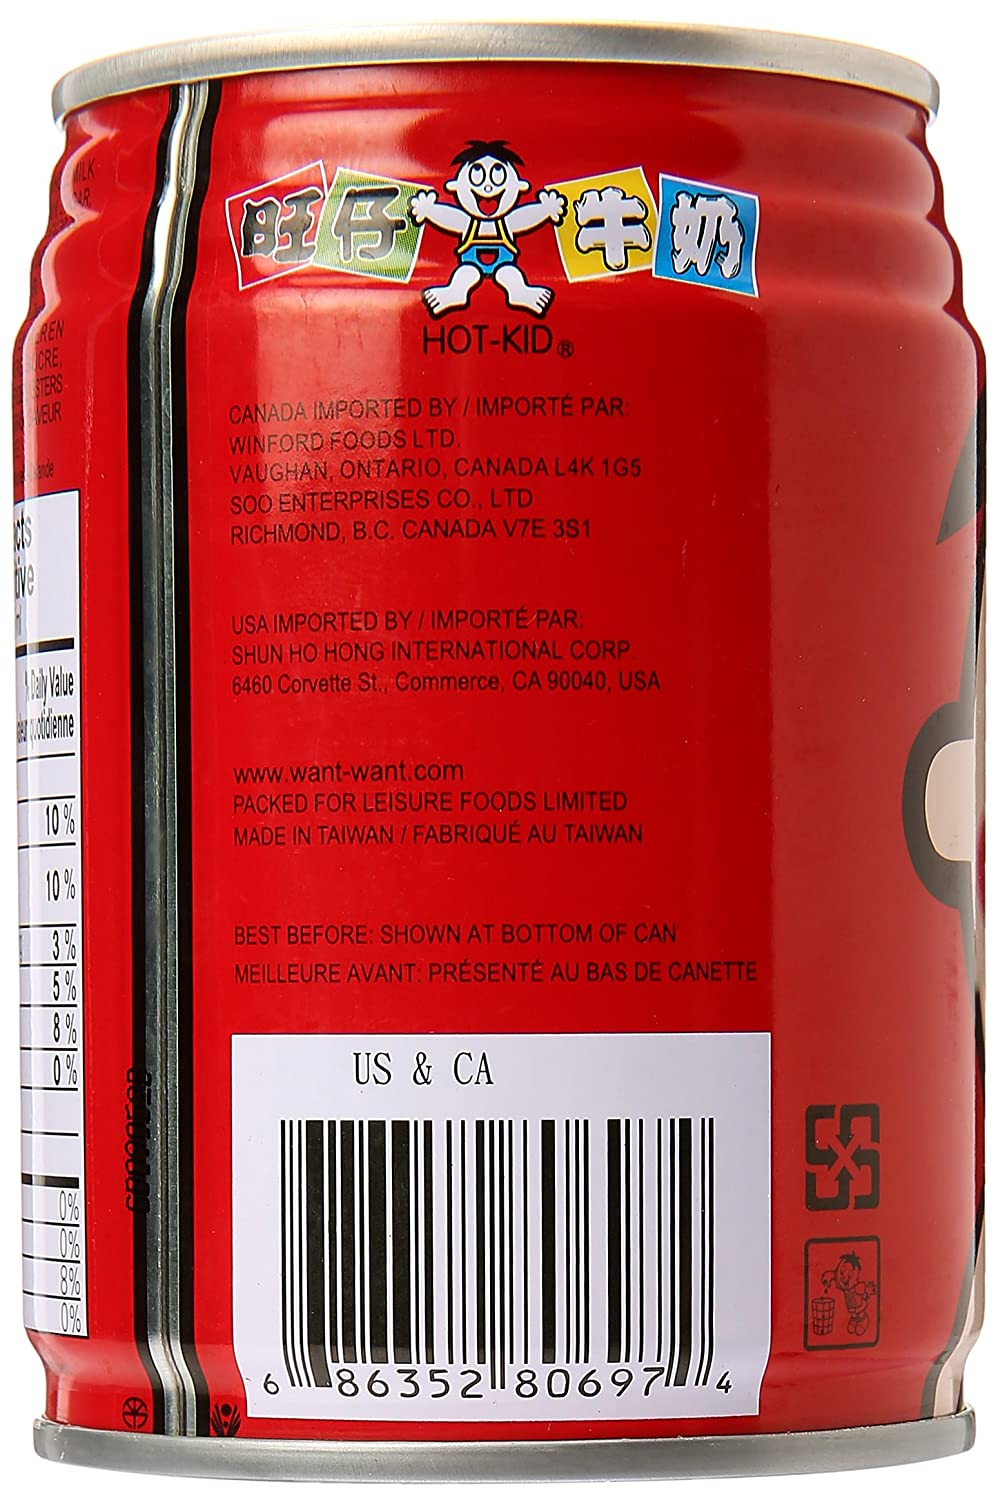 Amazon.com : Want Want Hot Kid Milk Drink, 8.2 Ounce : Beverages ...